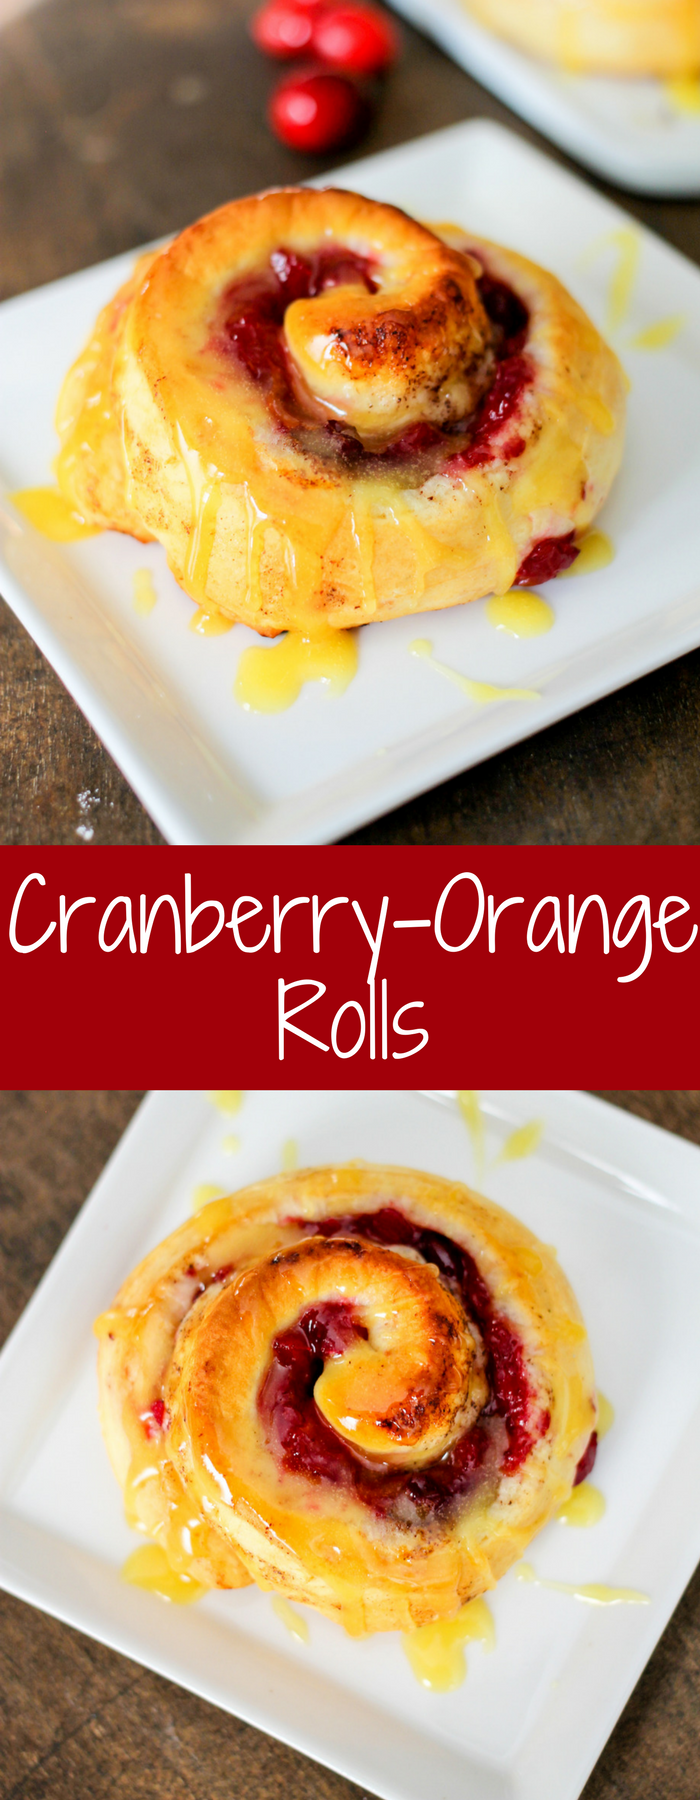 Bejeweled Cranberry-Orange Rolls are the perfect breakfast! Cranberry, pineapple, walnuts and ginger perfectly complement the orange cinnamon rolls!